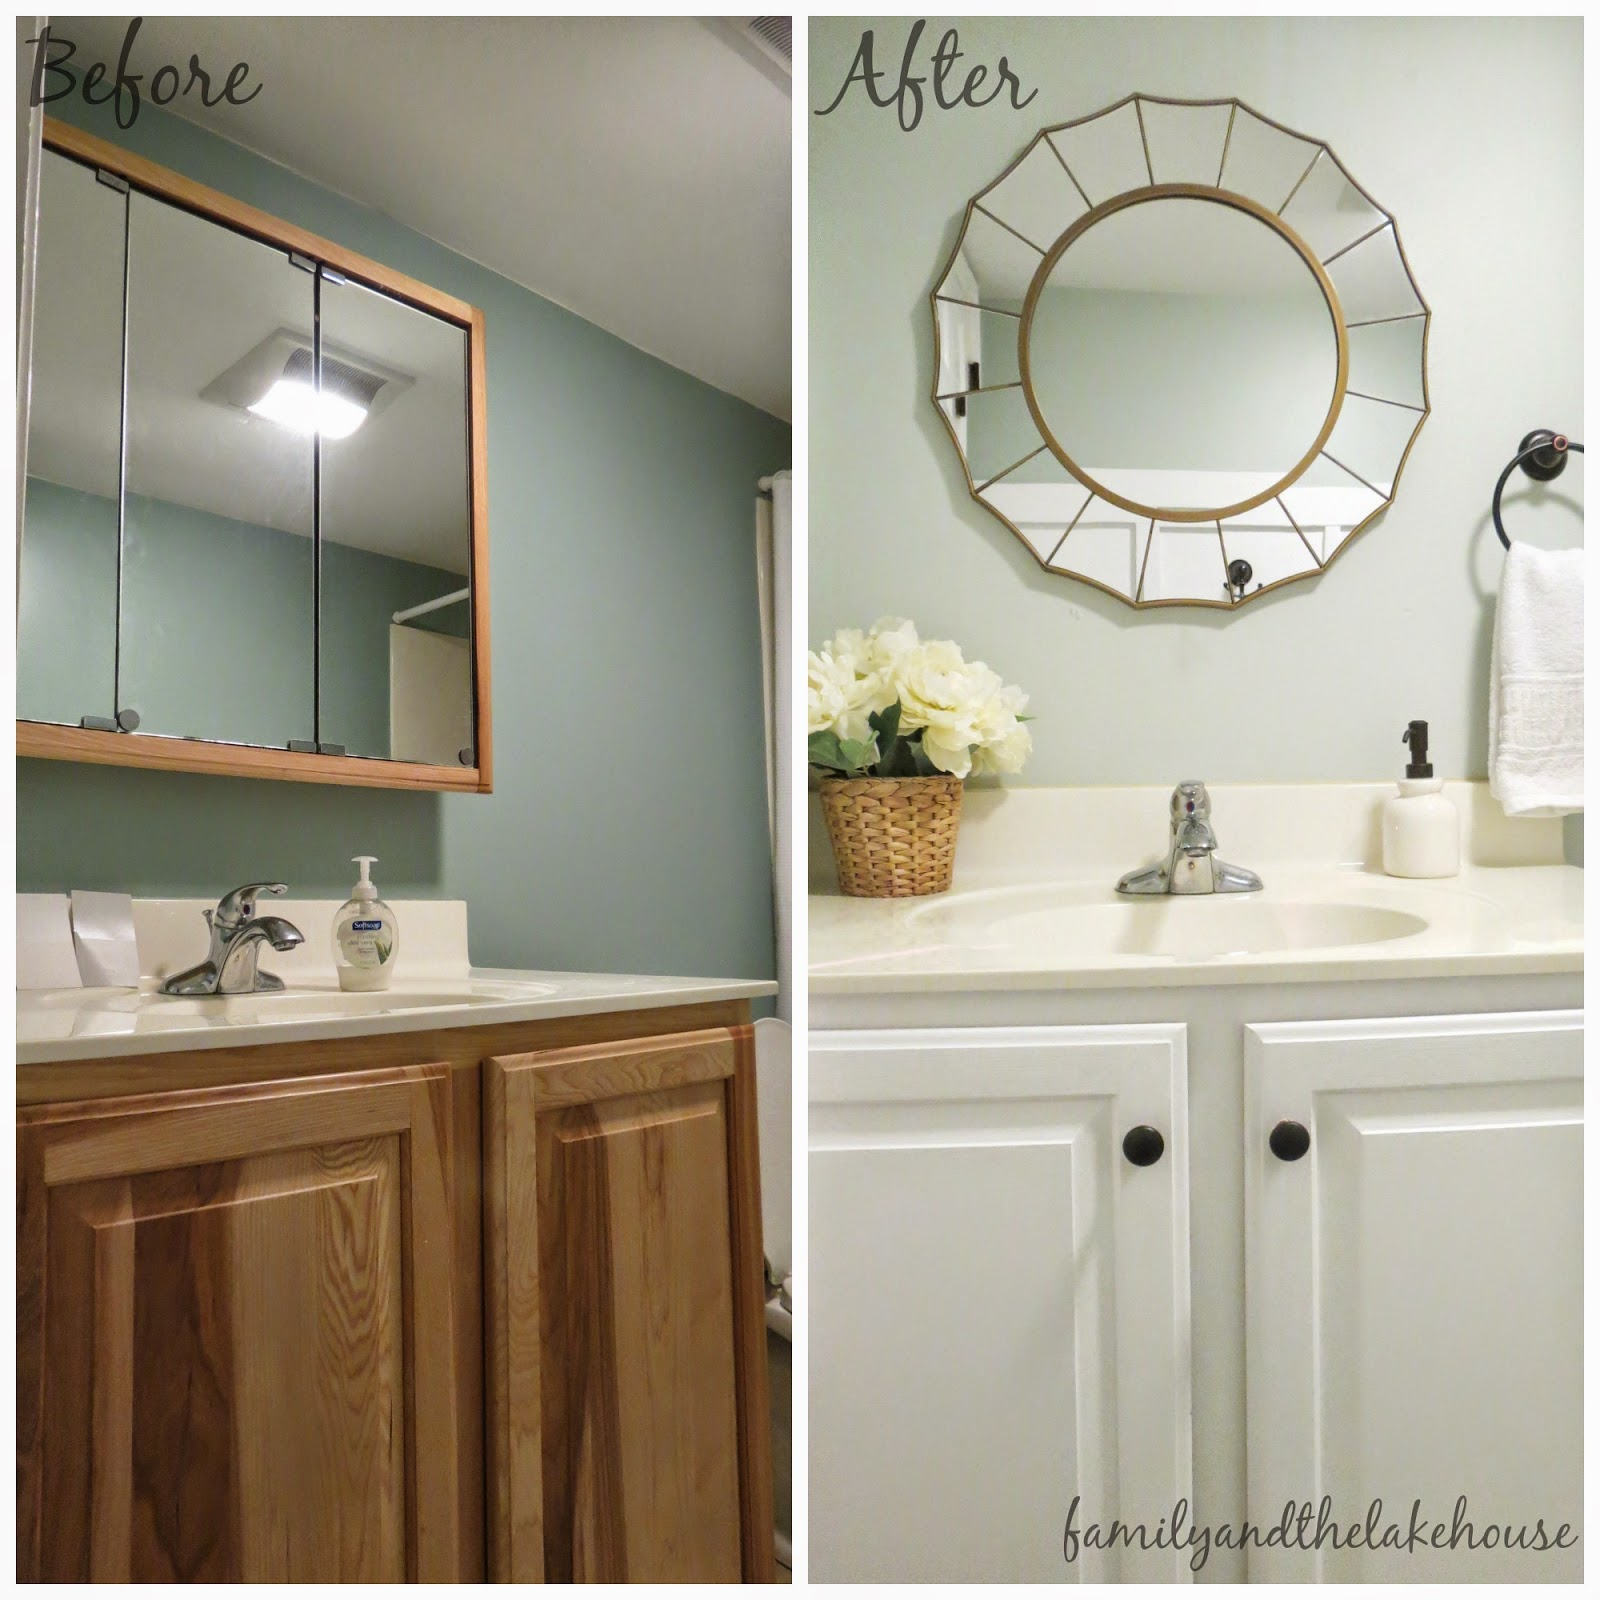 Family And The Lake House Guest Bathroom Before And After